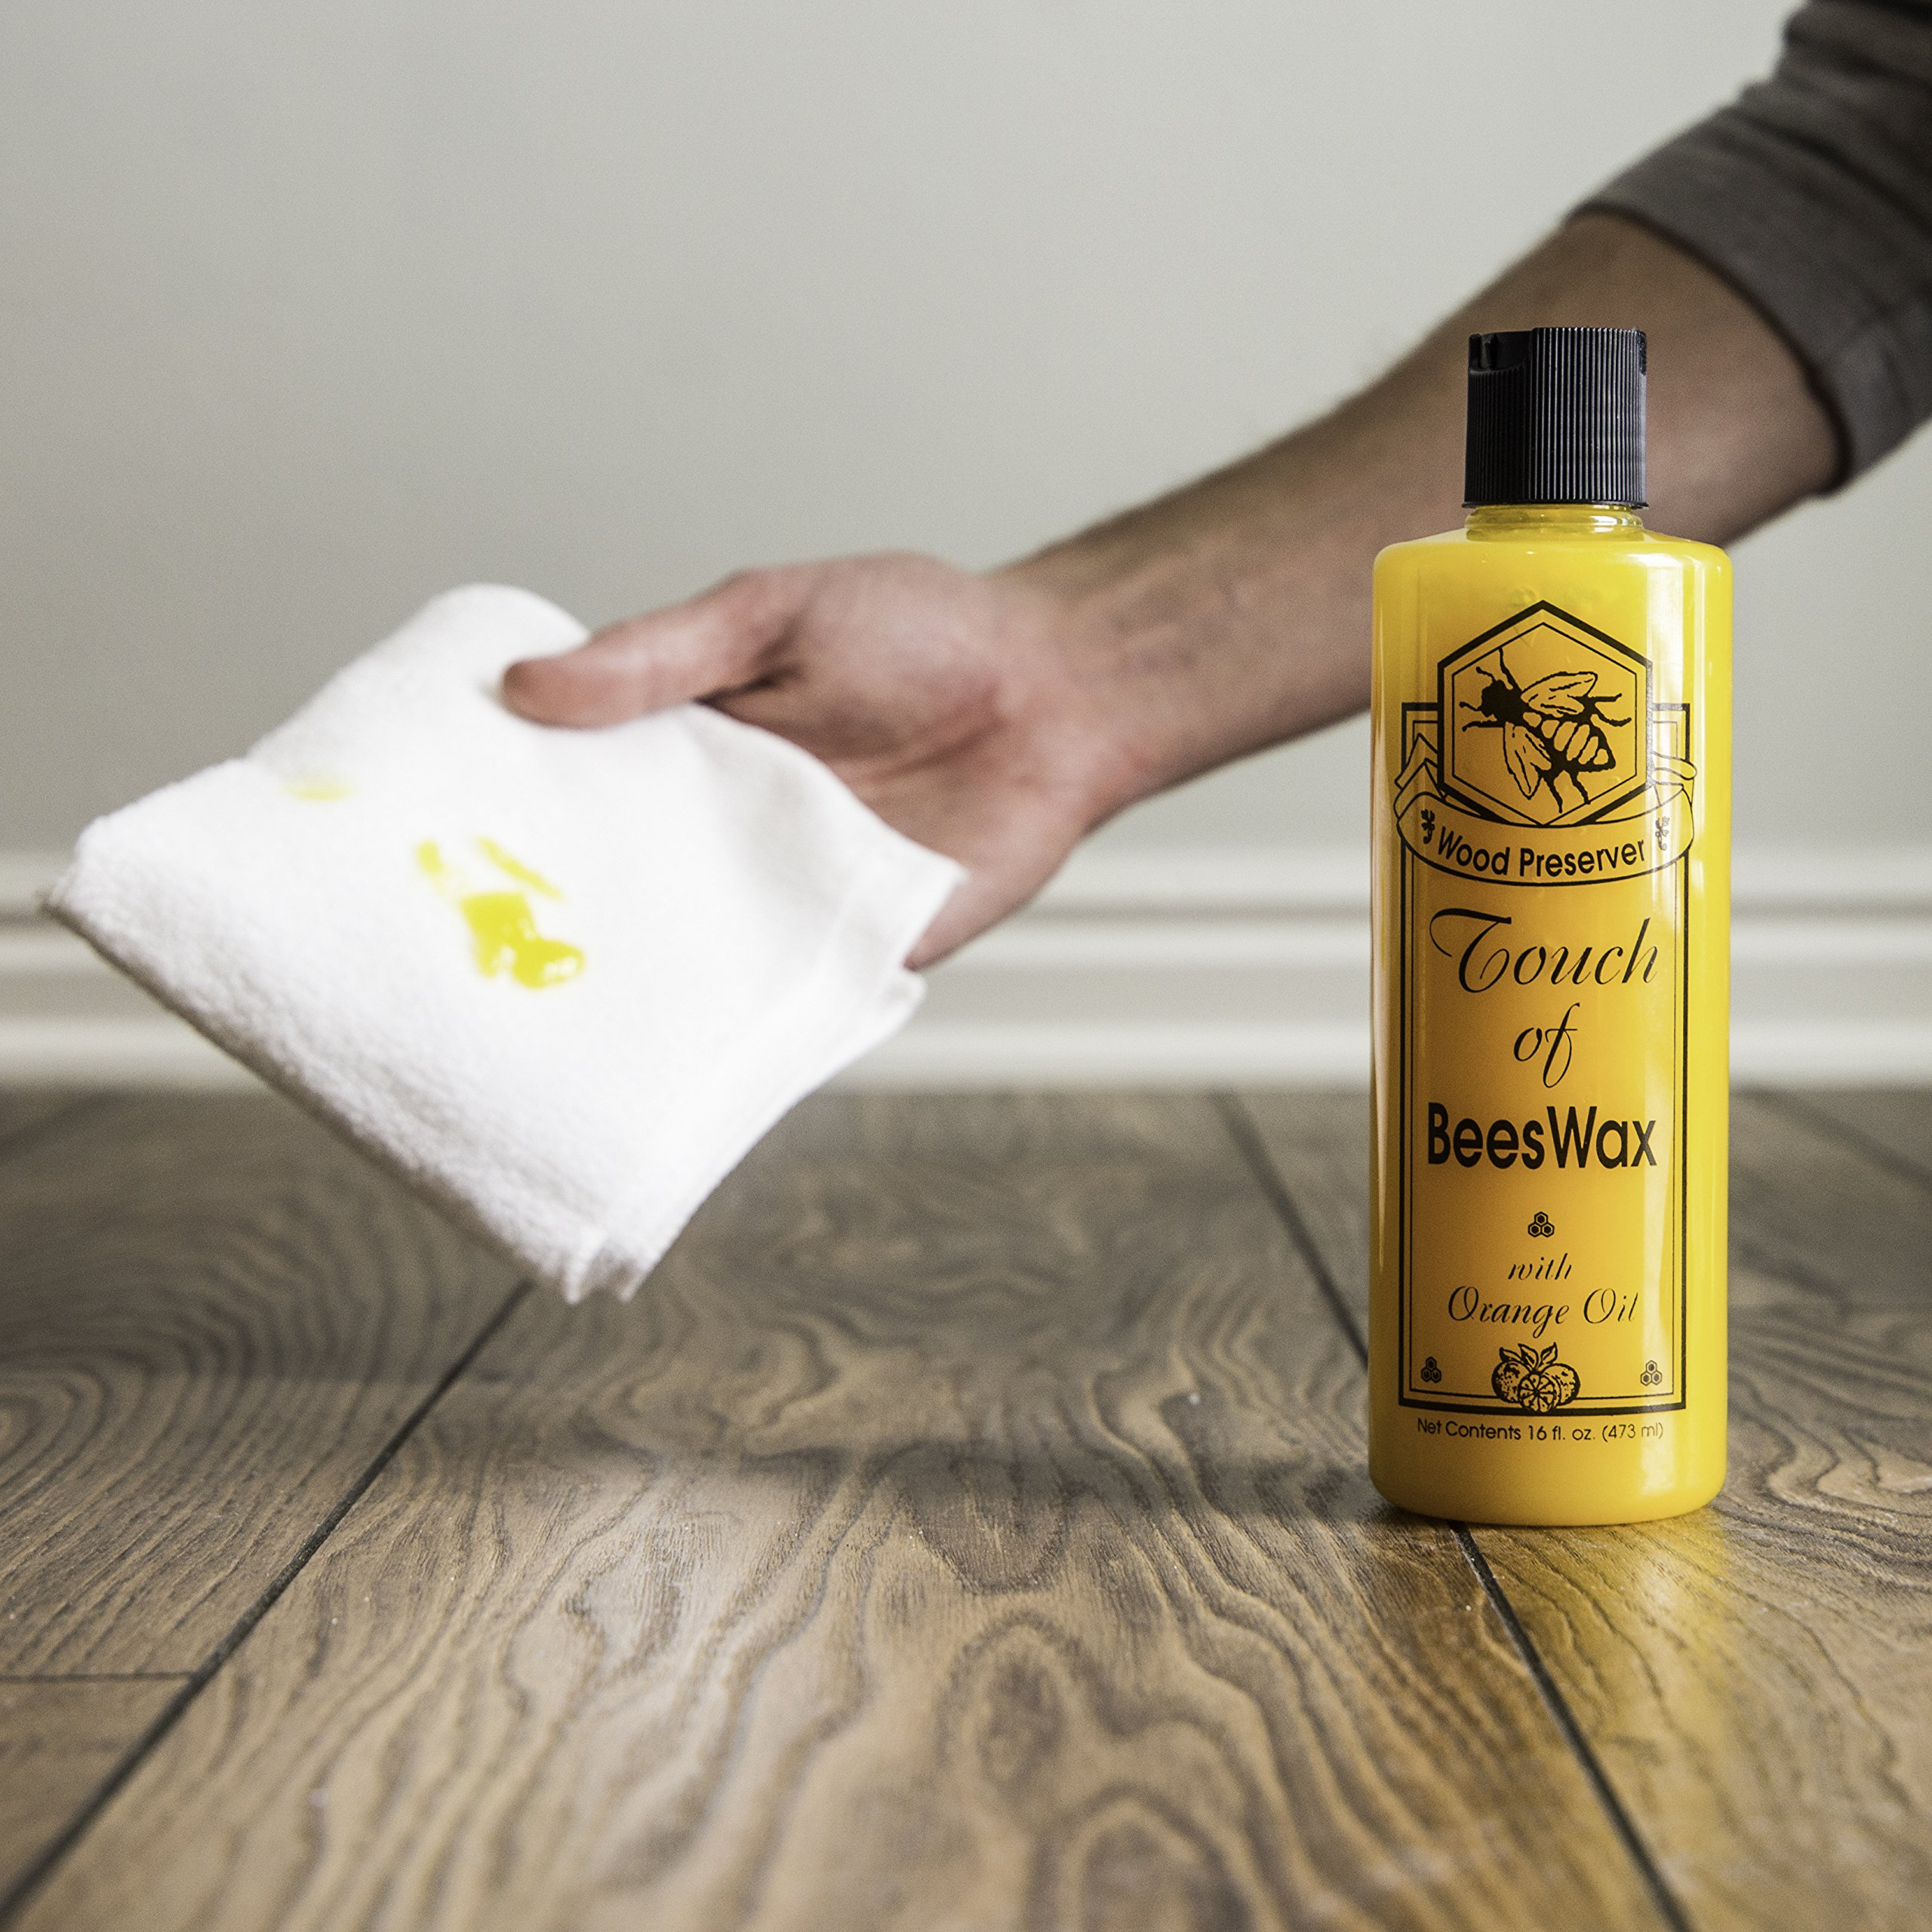 Touch of Oranges Hardwood Floor Cleaner and Touch of Beeswax for Wood Polish Cleaner and Restorer Bundle (1 gallon Cleaner & 1/2 gallon Polish) by Touch Of Oranges (Image #6)